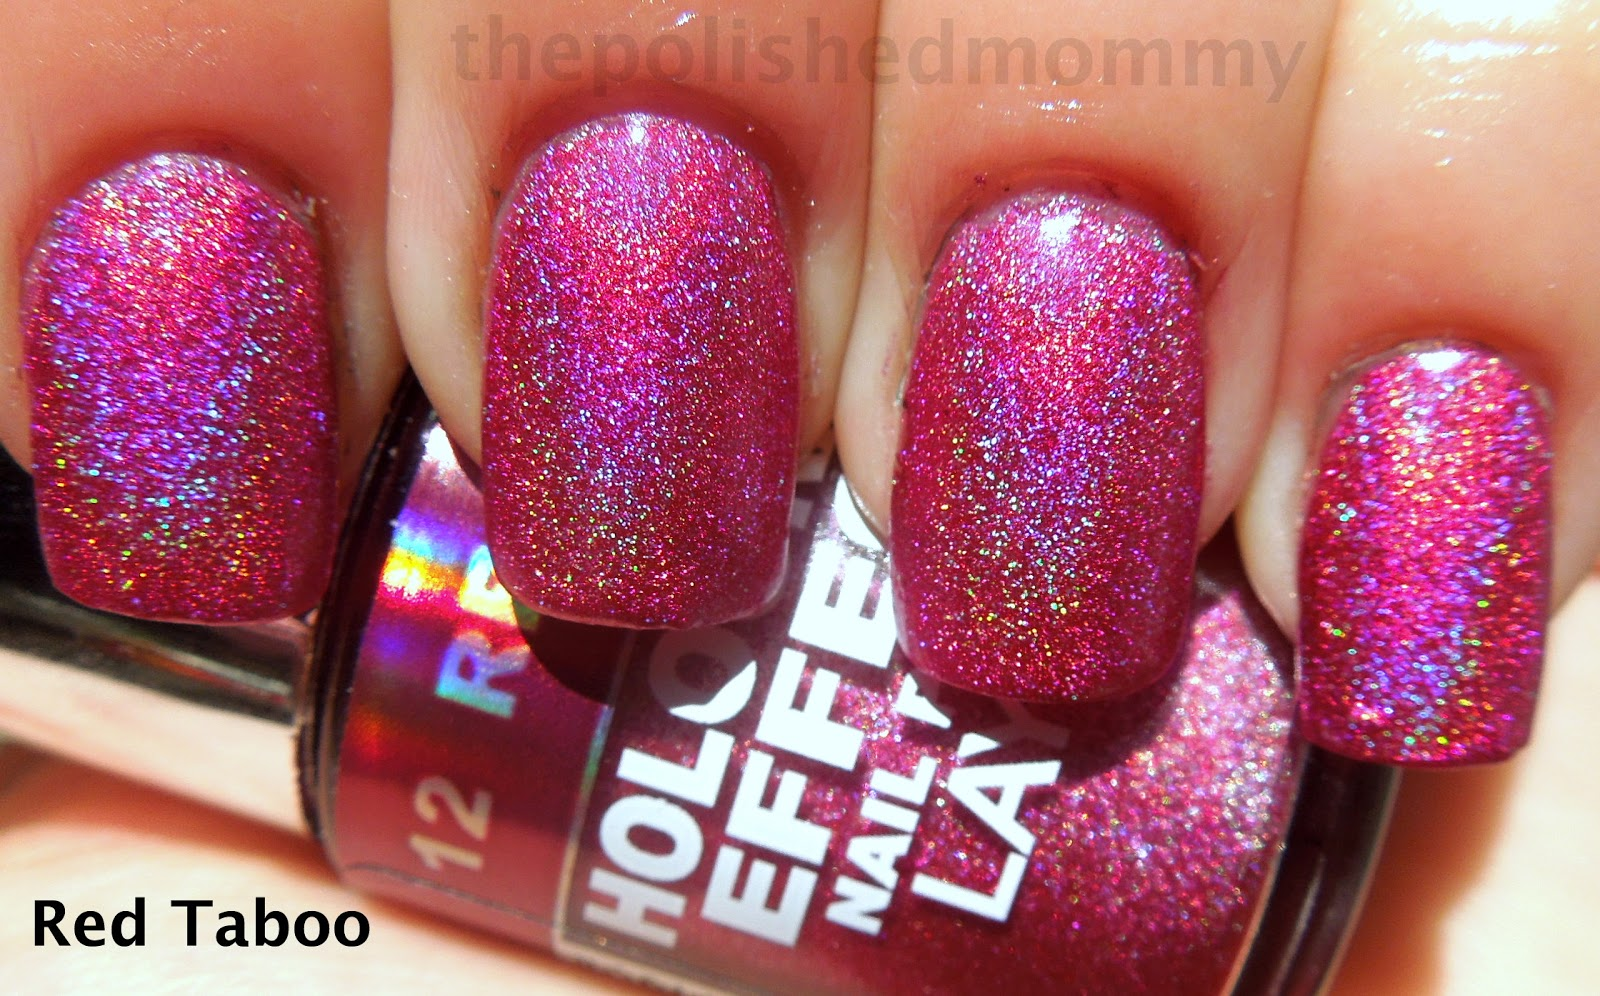 Red Taboo Is A Bright Pink With Purple Undertones